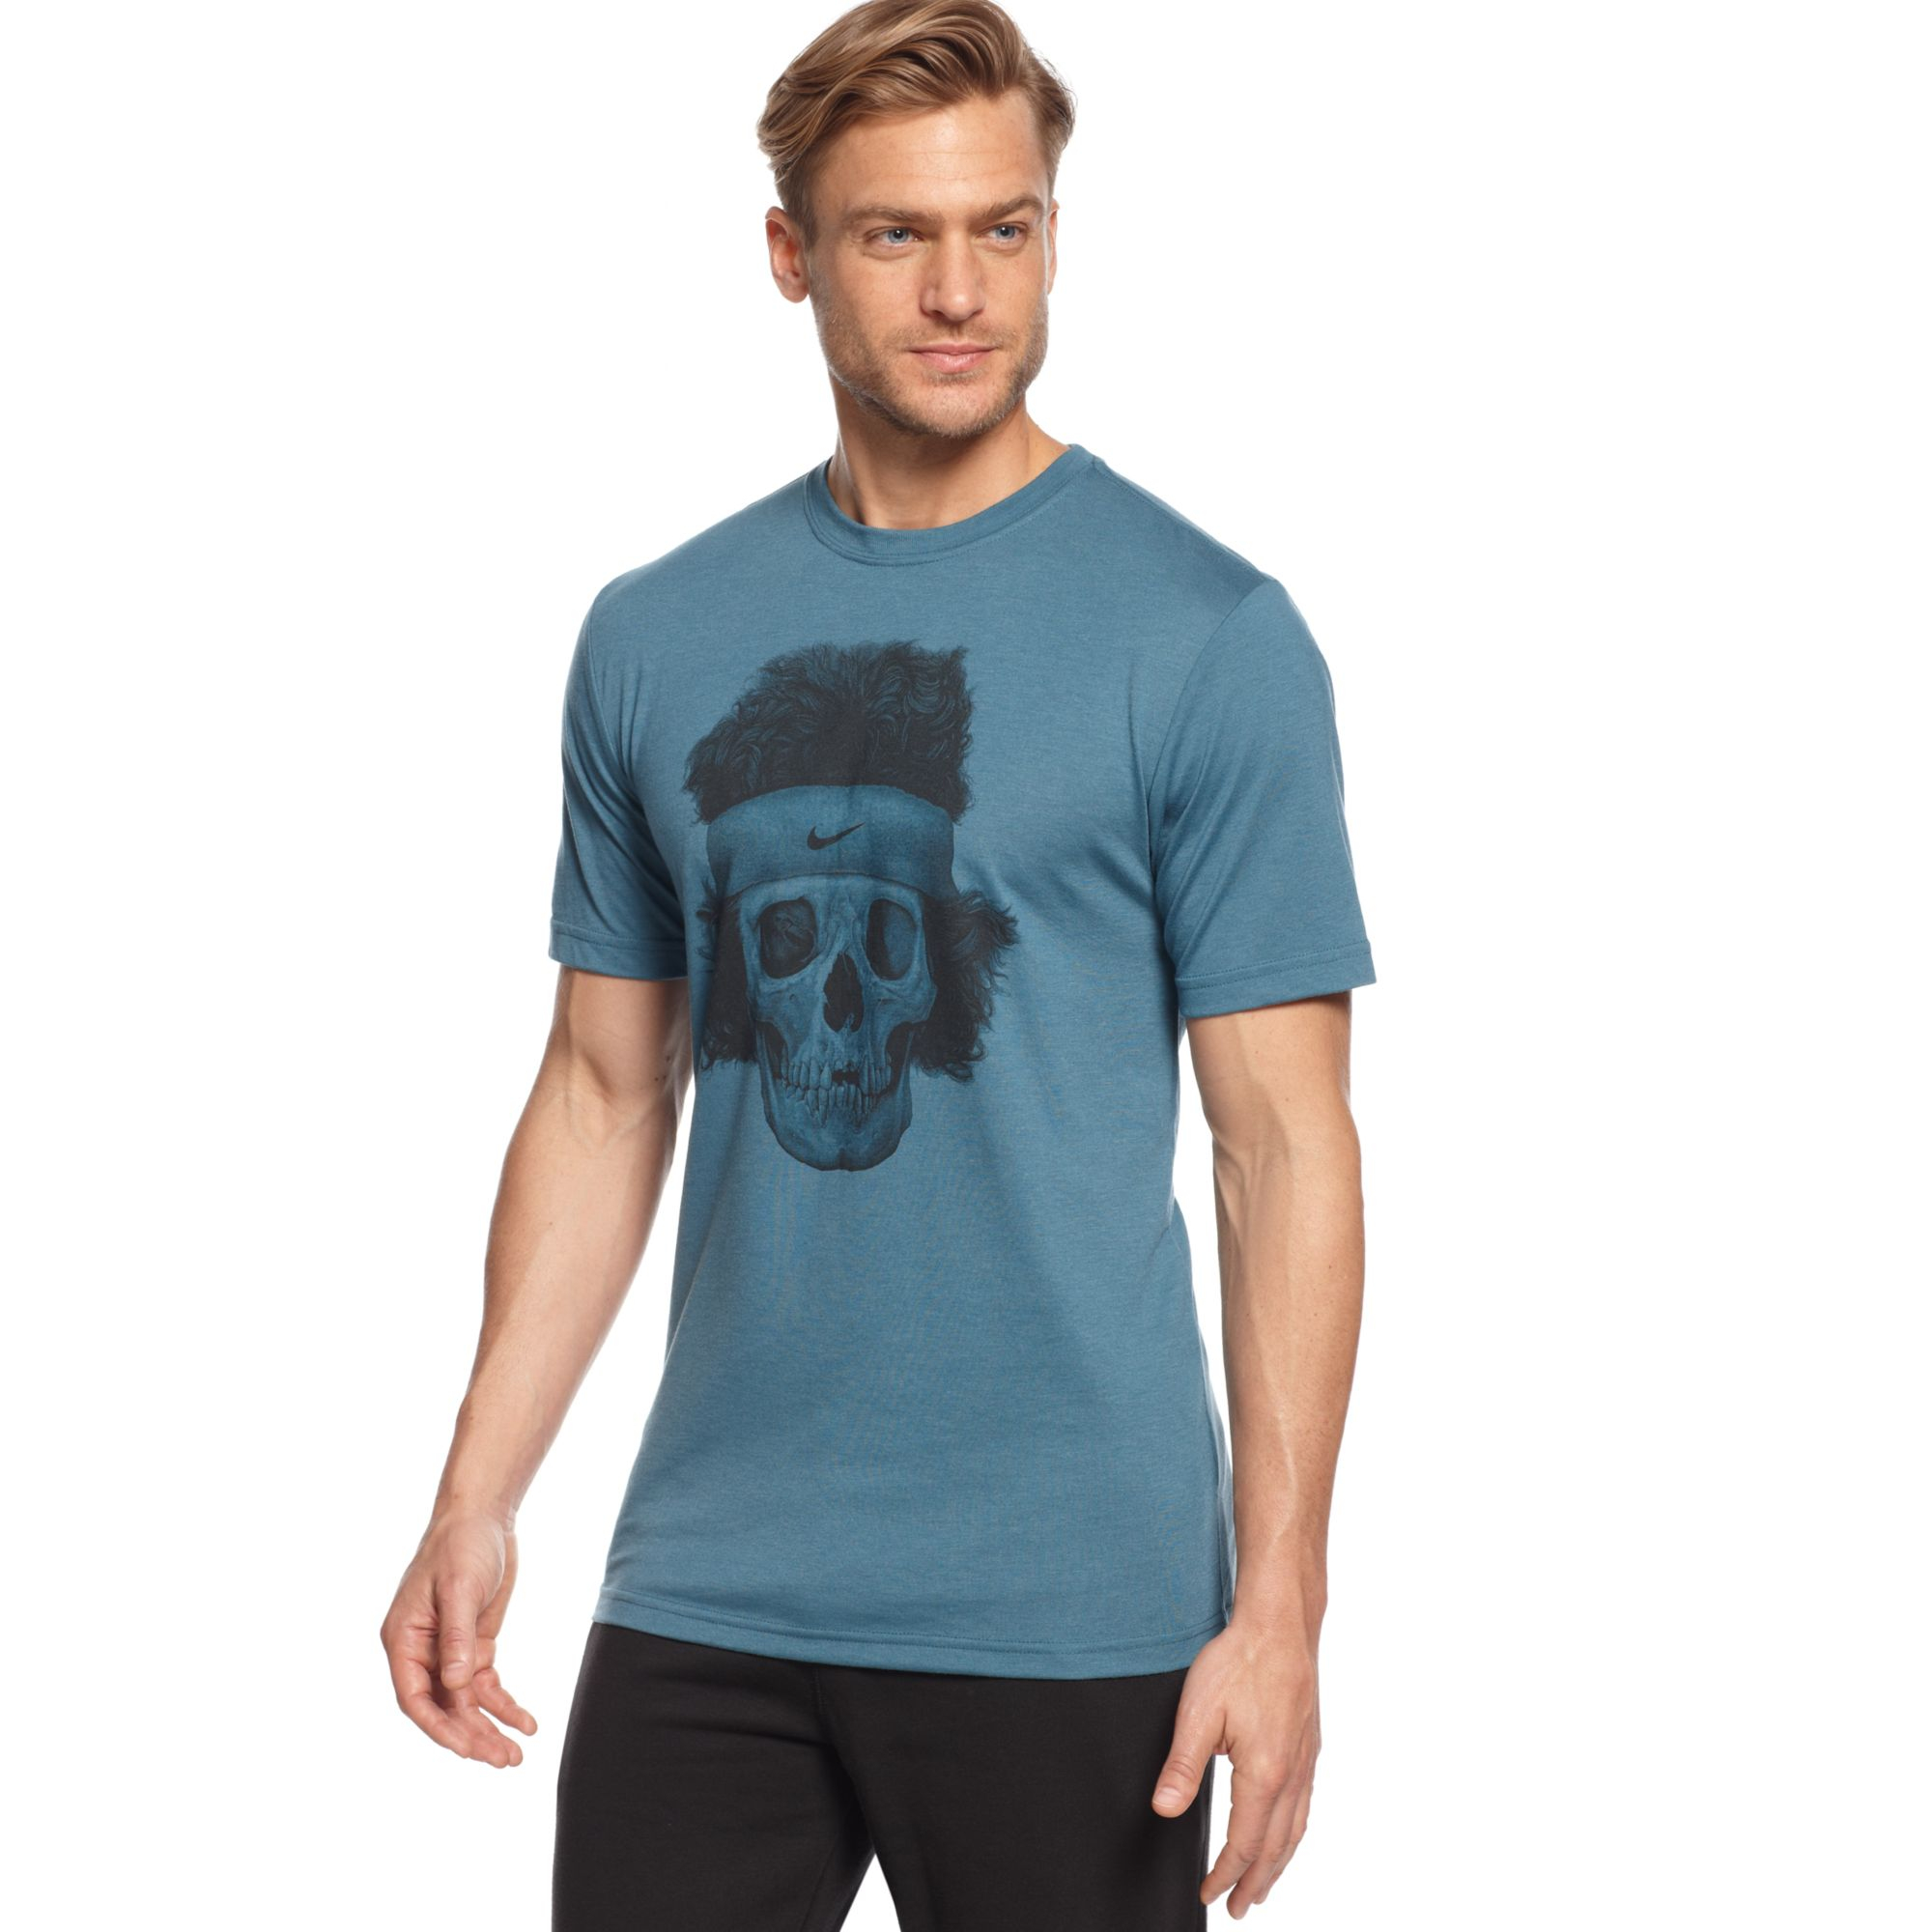 Amazoncom online shopping australia for Online shopping mens shirts